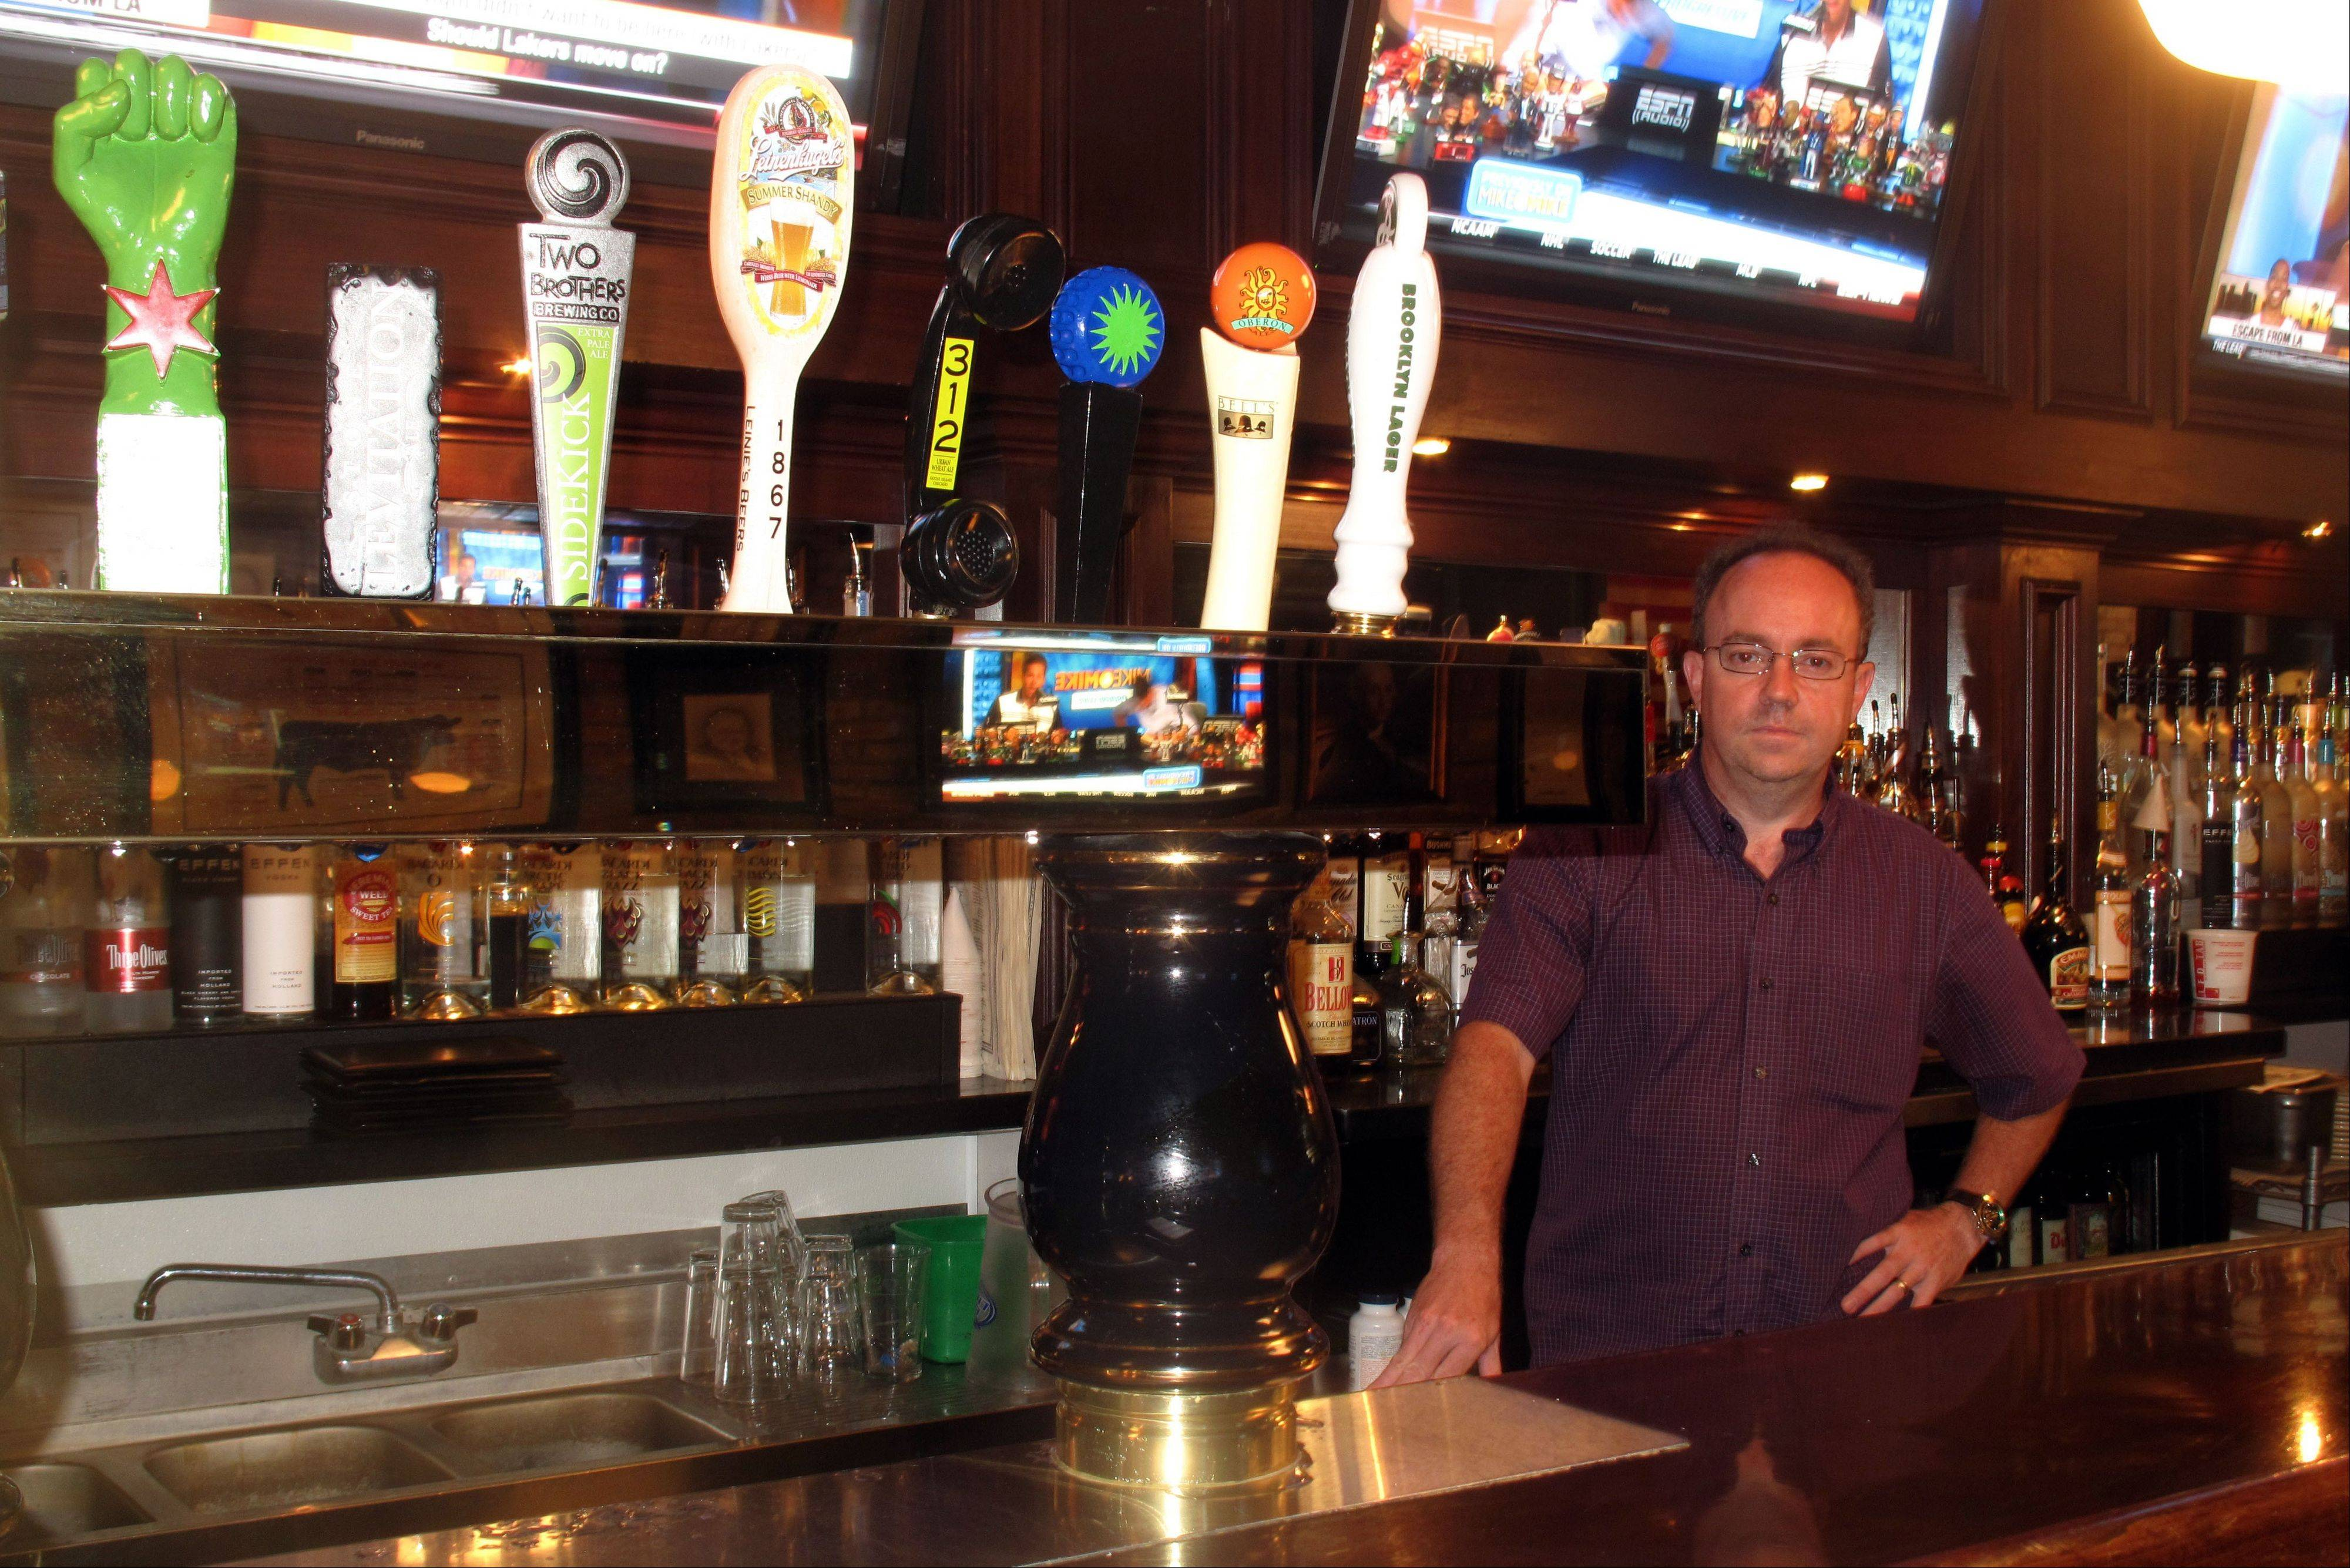 Wise Boxer upgrades food, beer at former BlackFinn site in Naperville